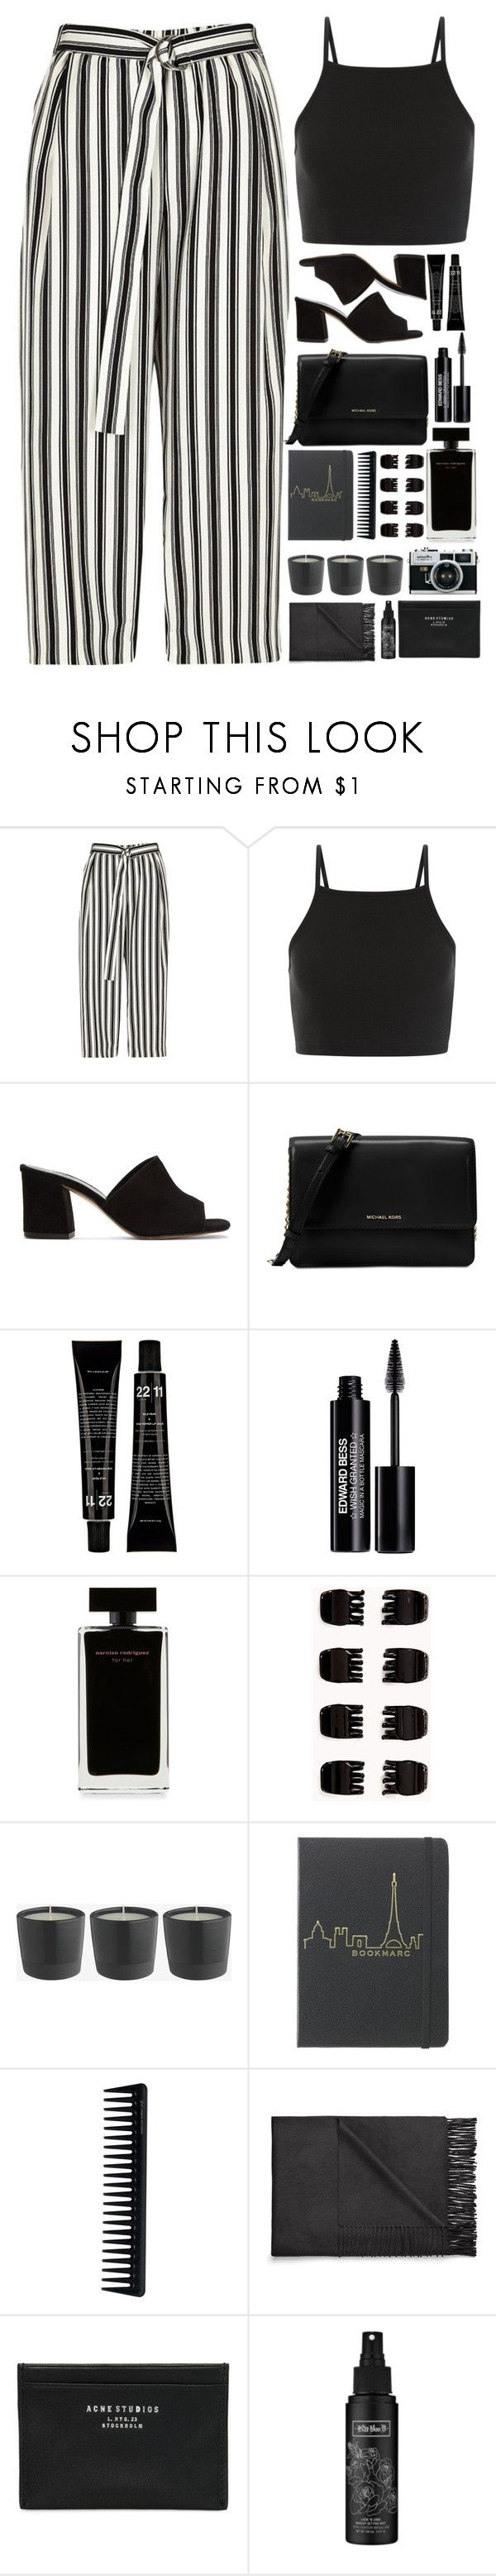 """Maybe I'm just too shy to say it"" by annaclaraalvez ❤ liked on Polyvore featuring River Island, Maryam Nassir Zadeh, Michael Kors, Edward Bess, Narciso Rodriguez, Forever 21, GHD, Acne Studios and Kat Von D"